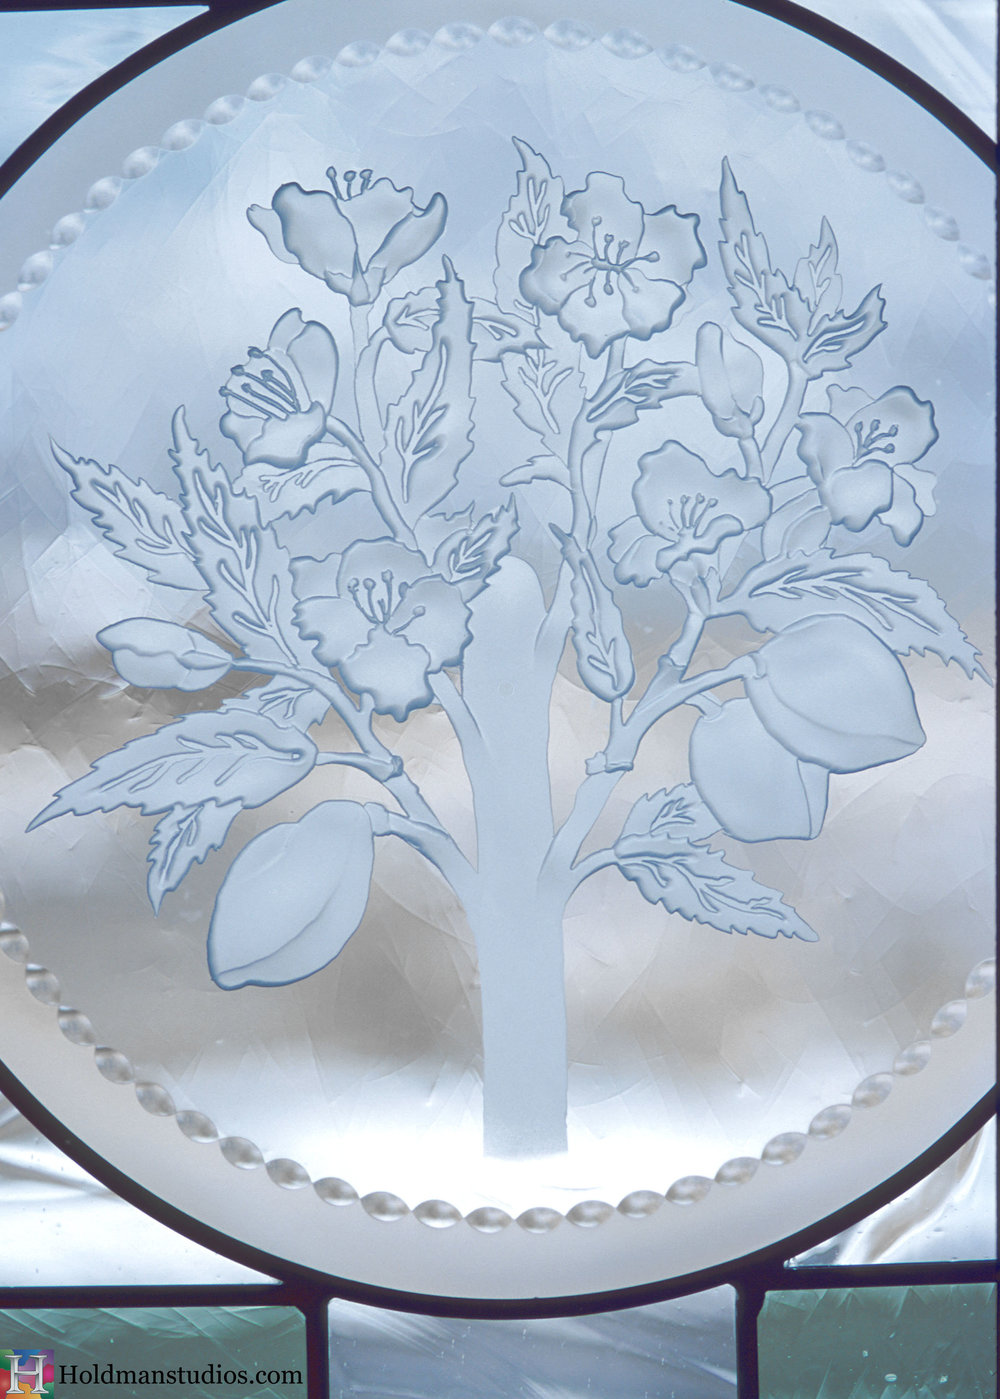 Holdman-Studios-Stained-Etched-Art-Glass-LDS-Mormon-Temple-Winter-Quaters-Omaha-Nebraska-Preisthood-Aaron-Almond-Branch-Leaves-Window.jpg